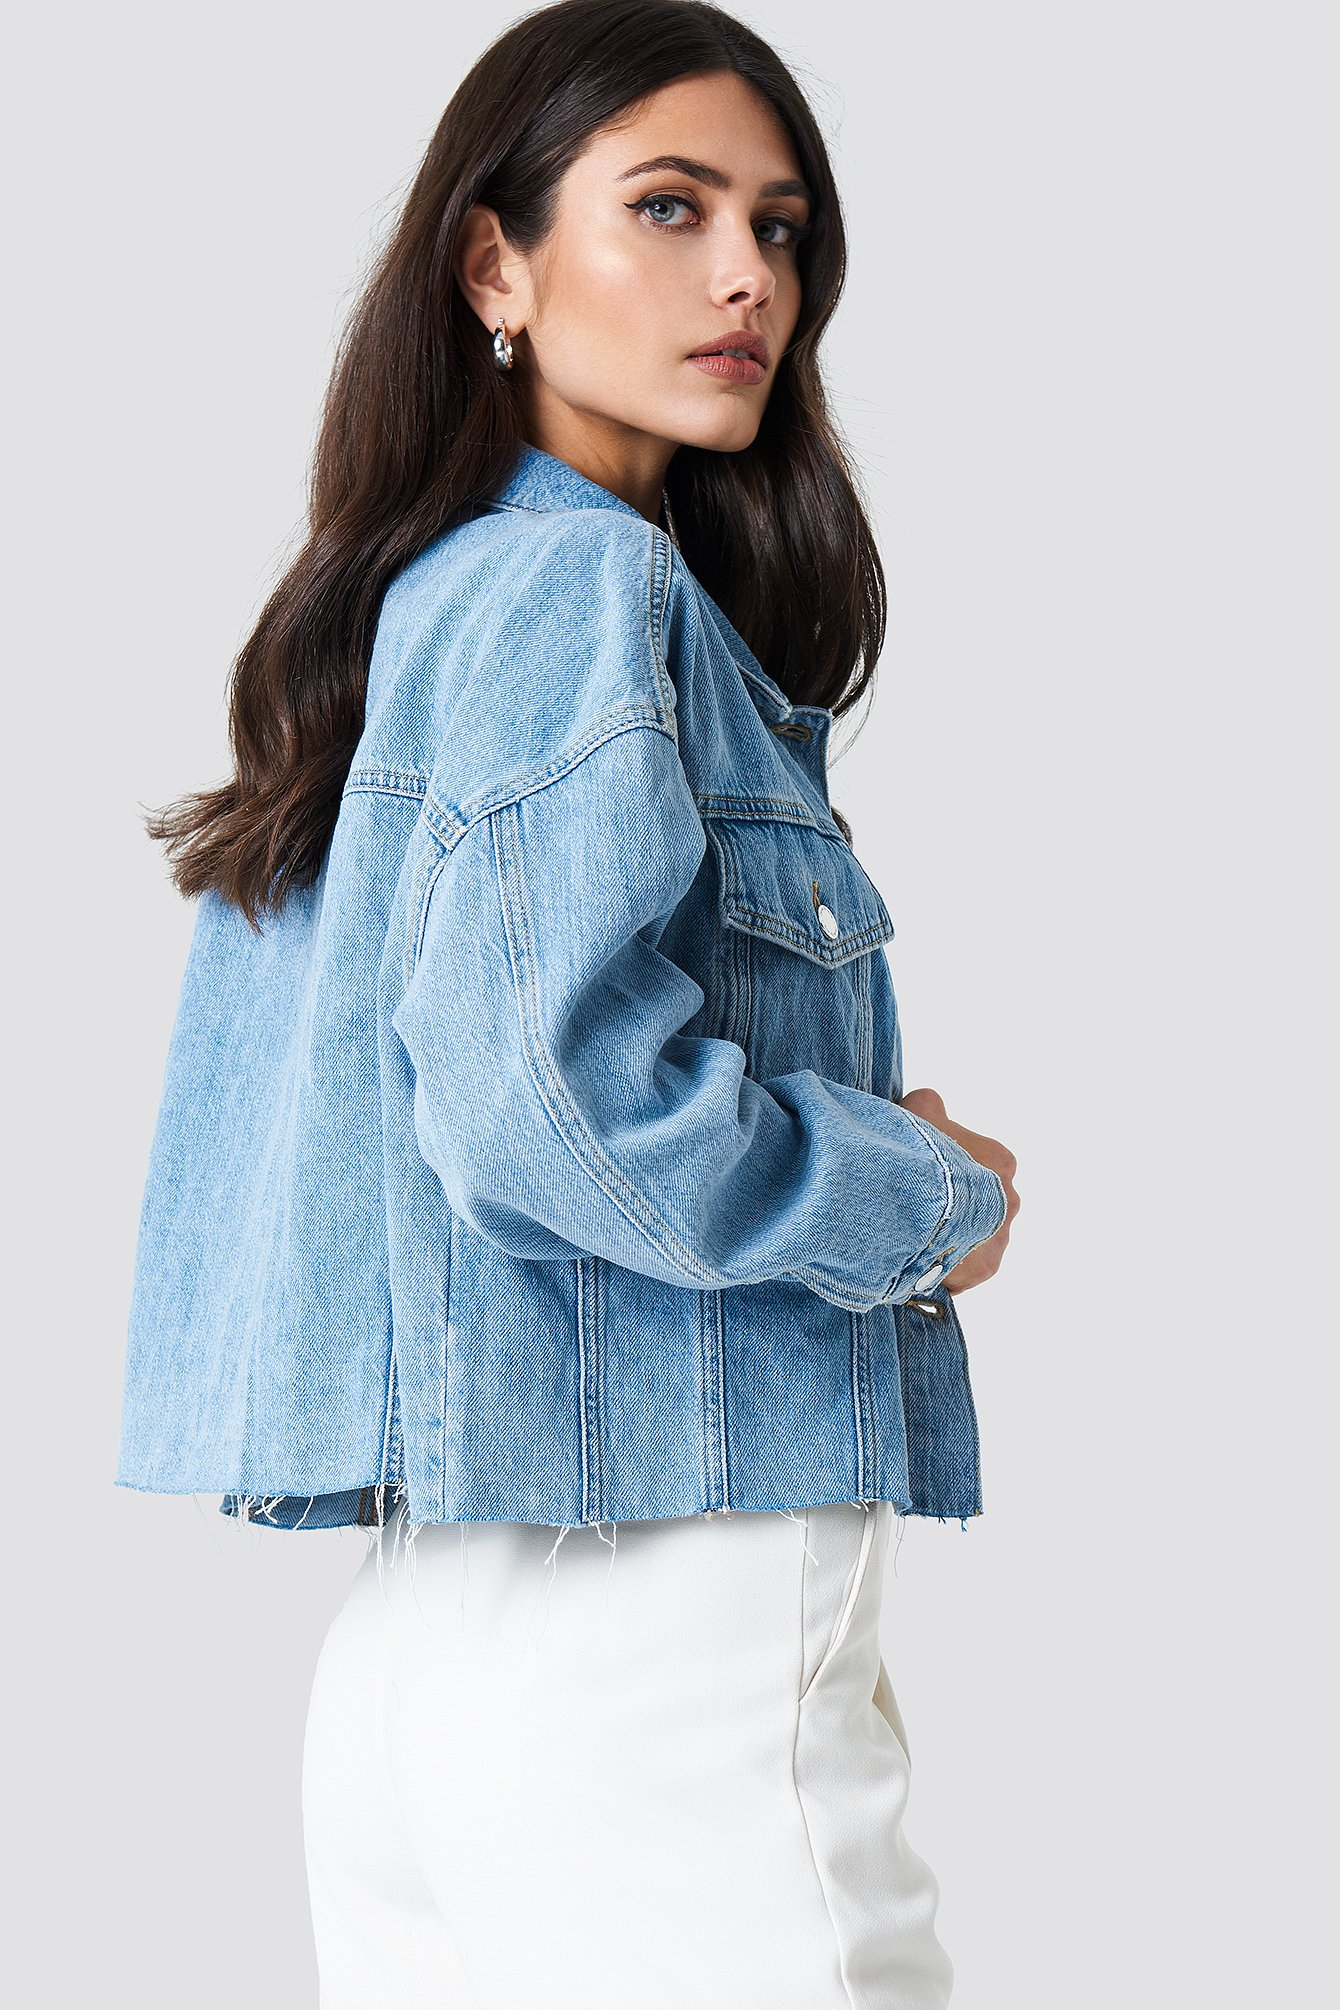 Open Blue Parisian Jacket